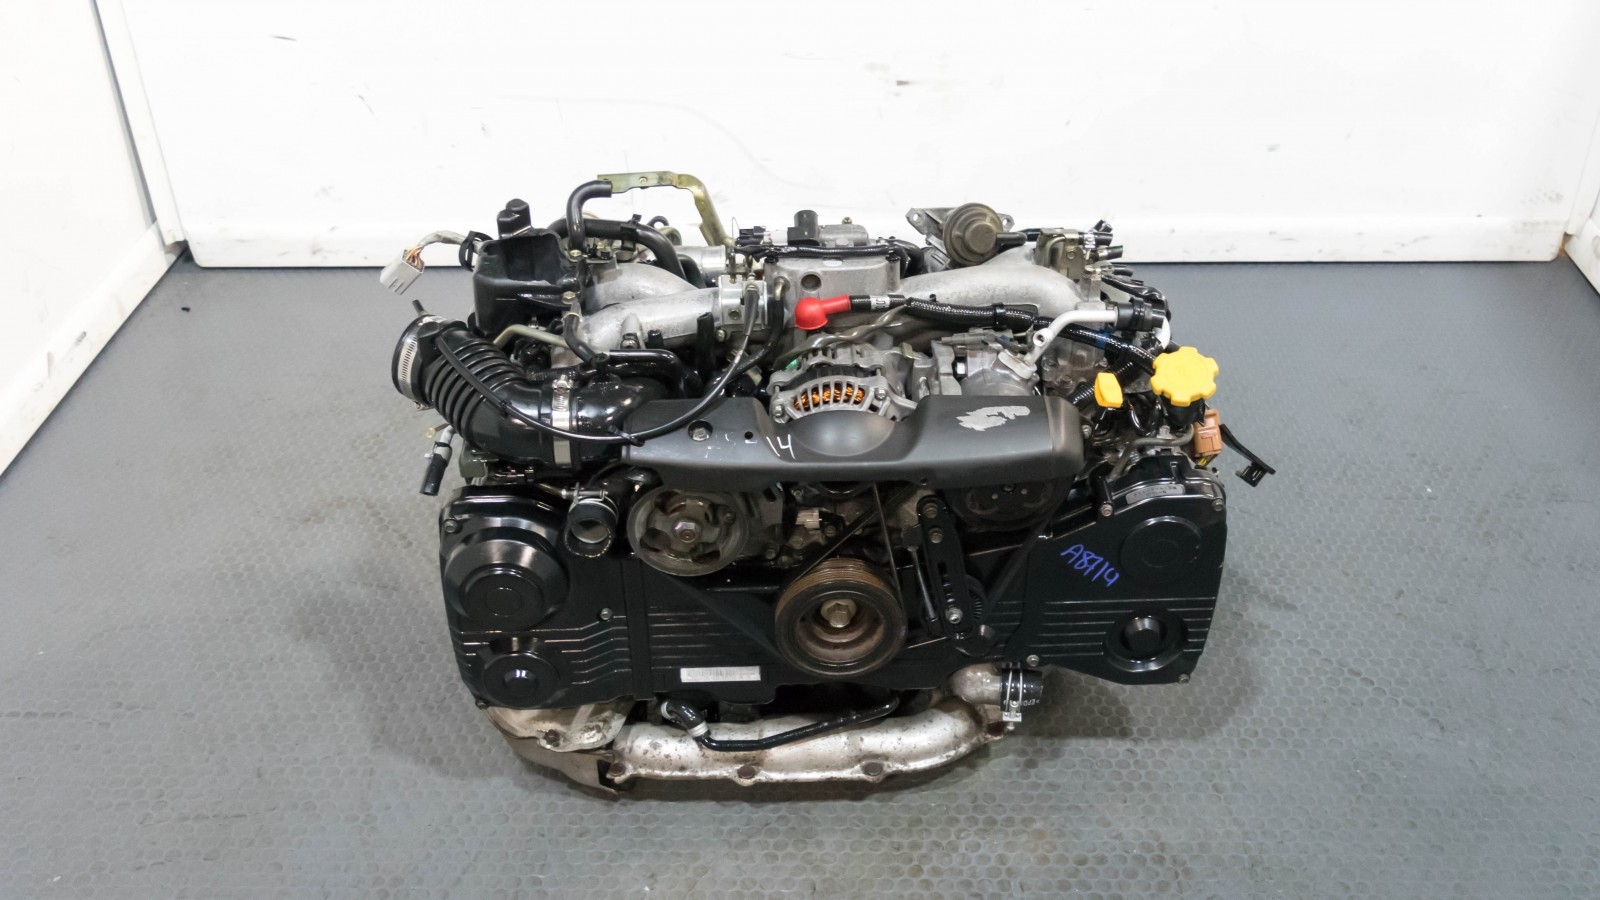 Clean JDM Impreza WRX EJ205 Engine Replacement with AVCS , TGV & TD04 Turbo